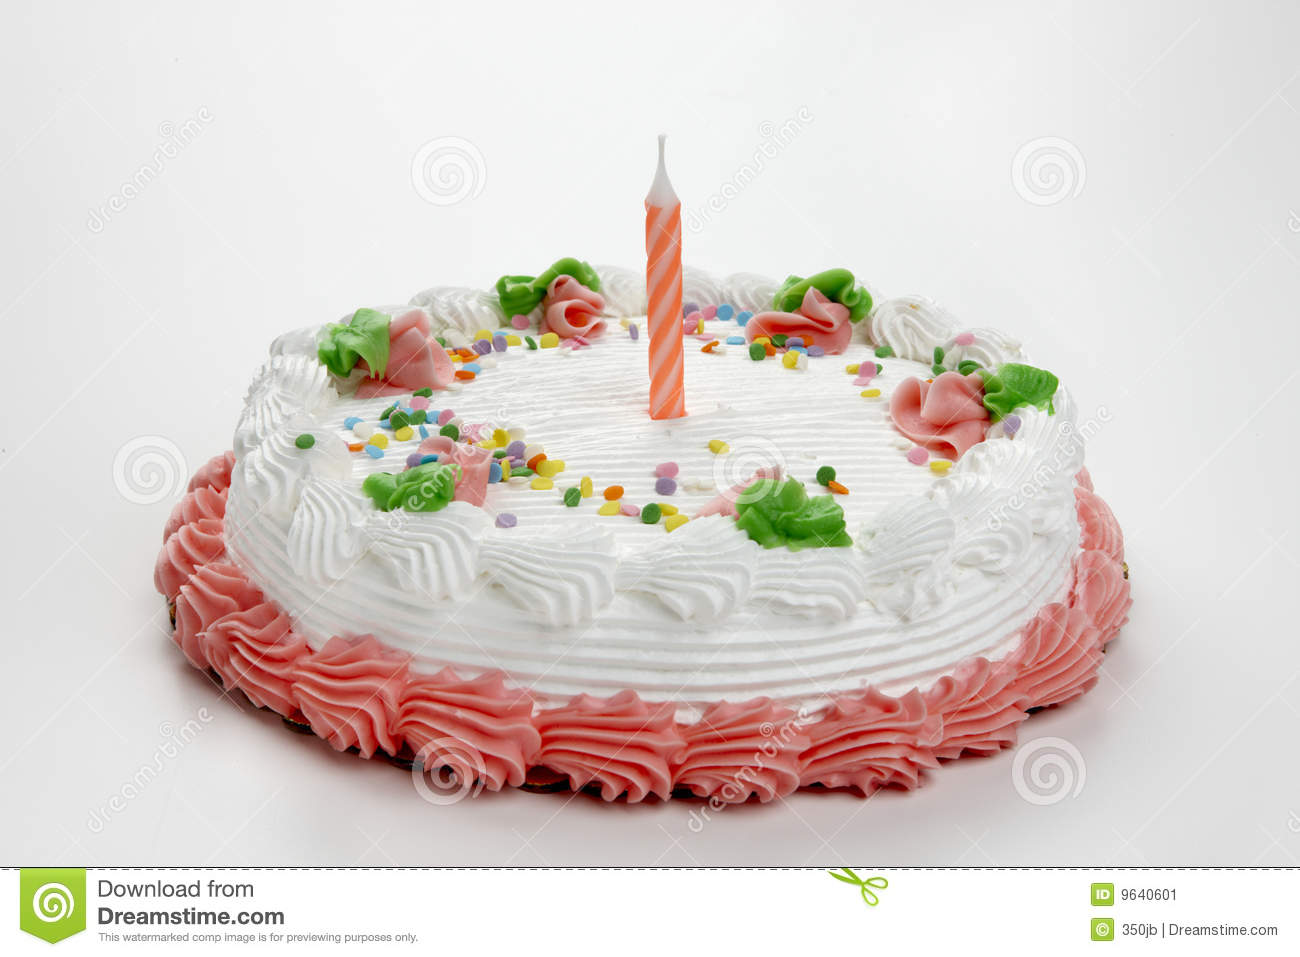 Image Of Birthday Cake With One Candle : Birthday Cake With Candle Stock Image - Image: 9640601